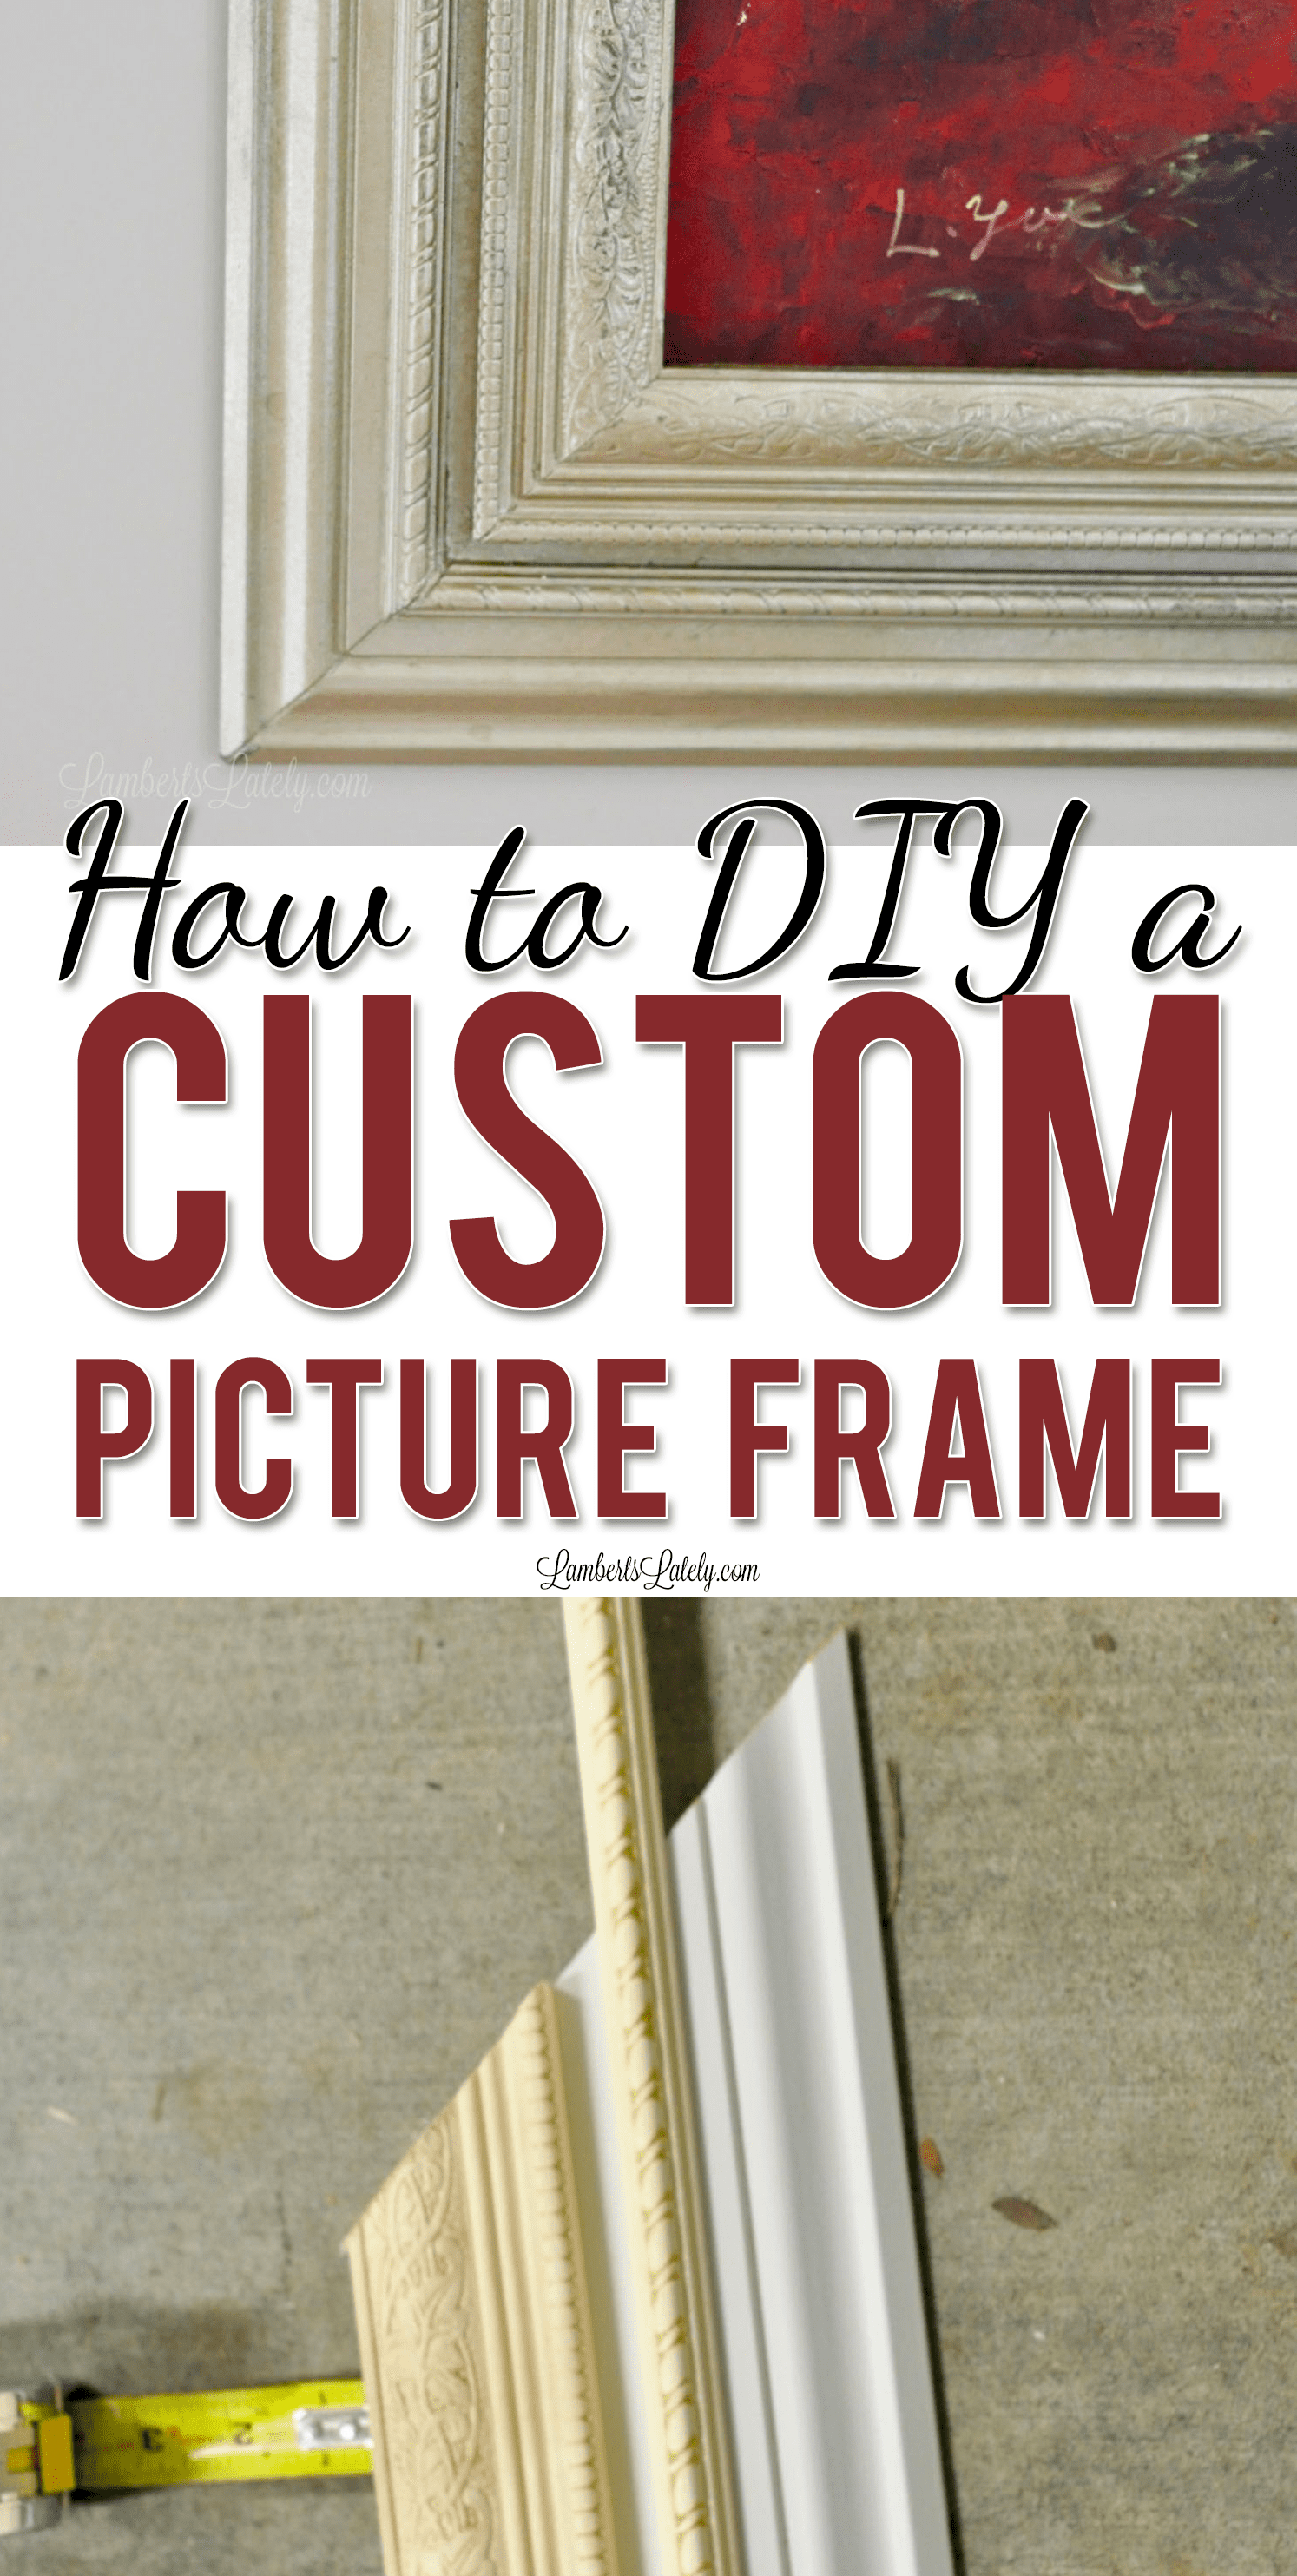 This tutorial for how to build a custom picture frame with baseboard and decorative trim moulding makes a great, ornate frame for canvases. Includes ideas on how to paint the frame with a gold/antique look with spray paint.